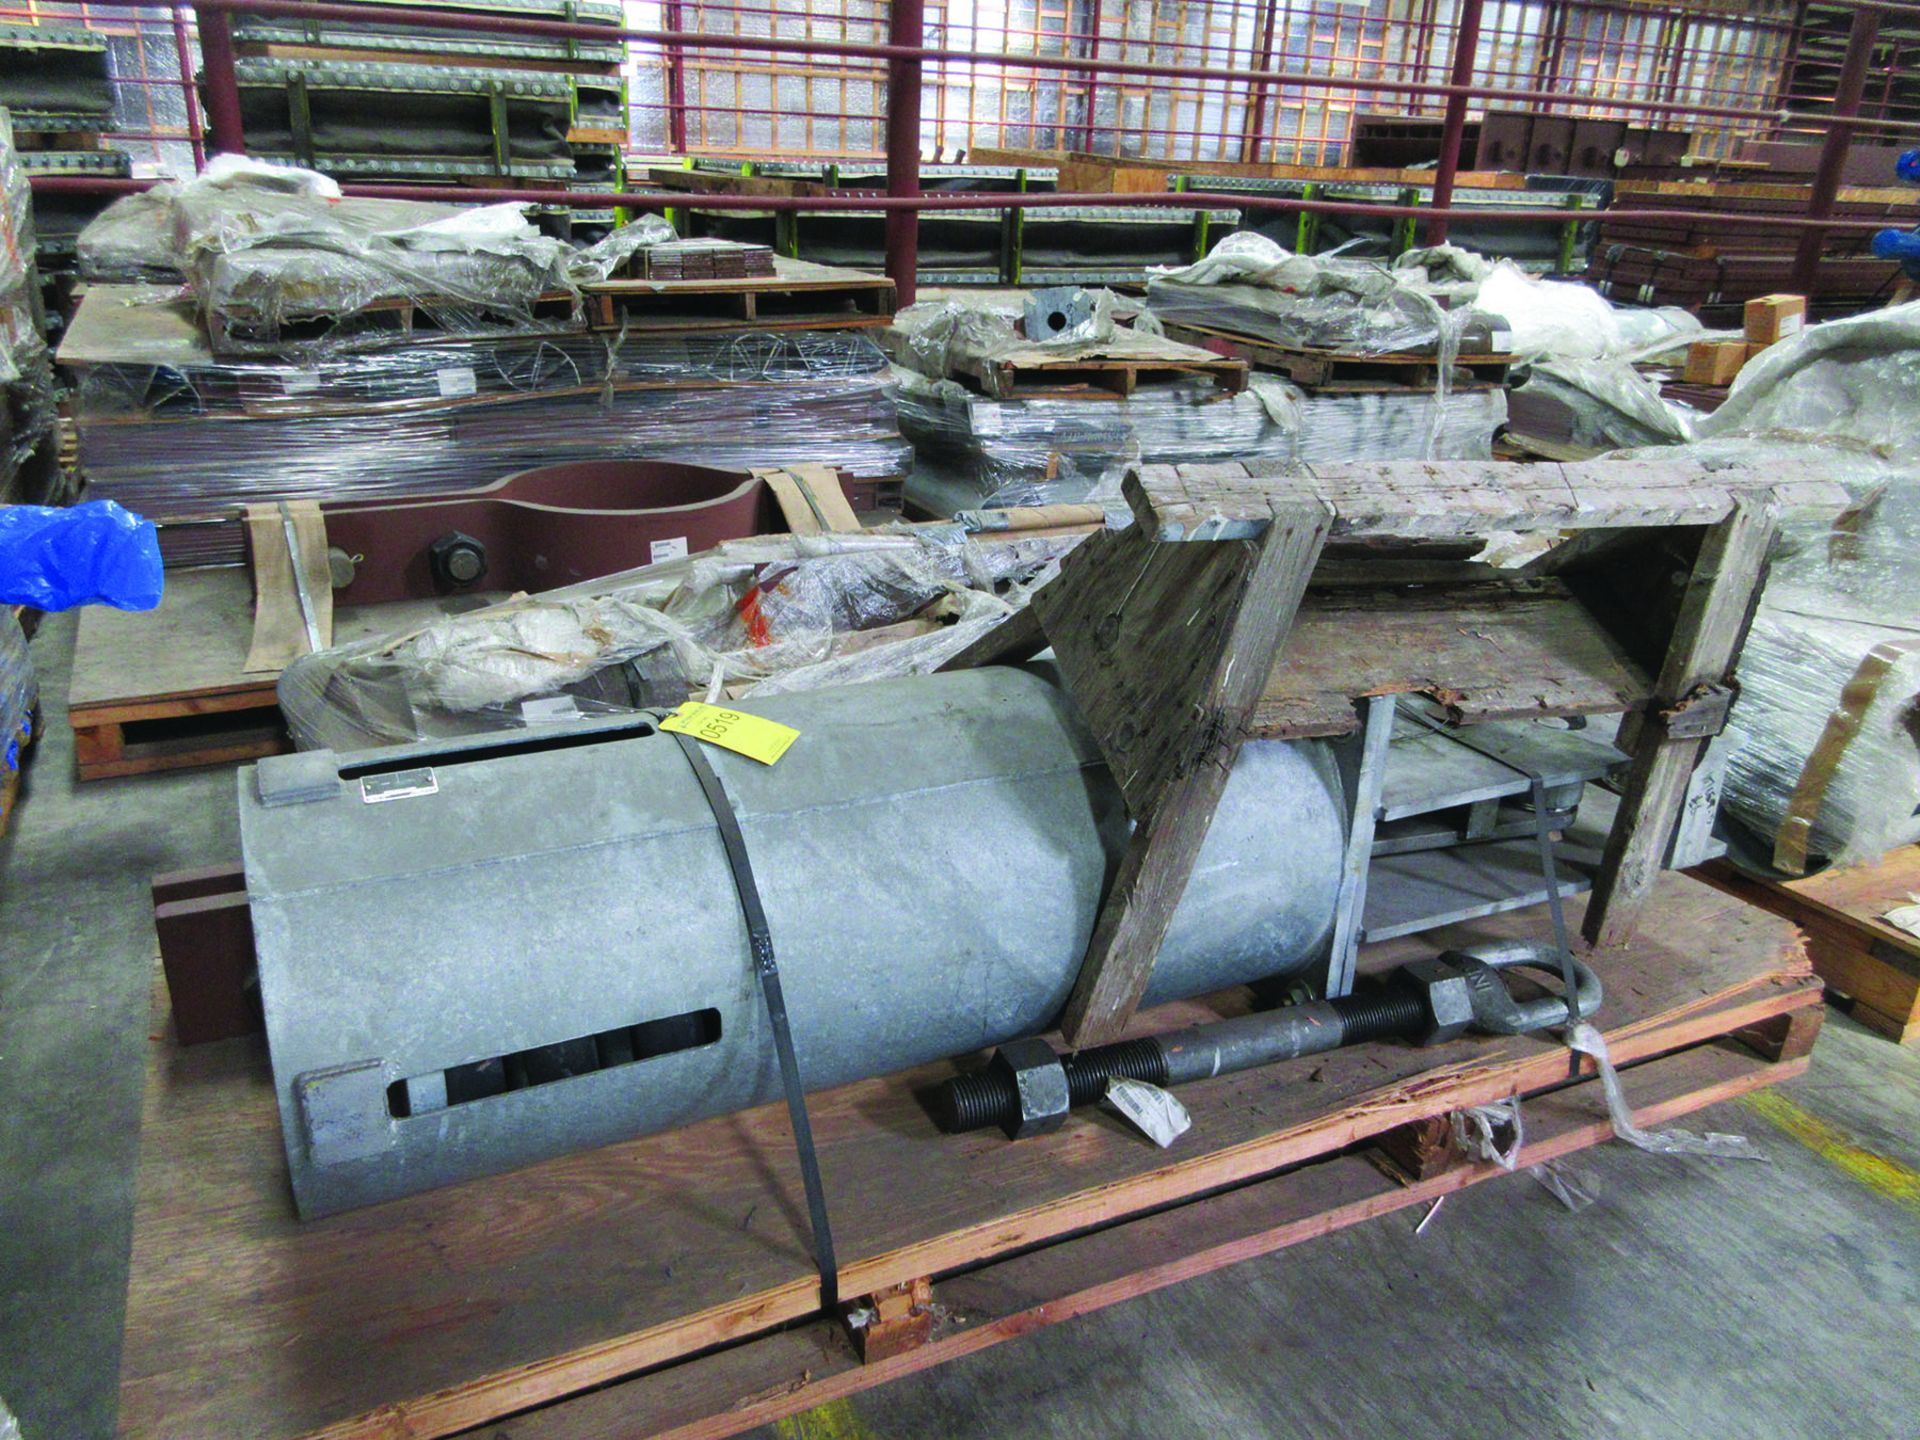 ASSORTED STEEL: PLATES, BEAMS, ROOF/SIDING SUPER RIB CLOSURES, BRACKETS, SPRING CANS, STEEL BRACING, - Image 5 of 16